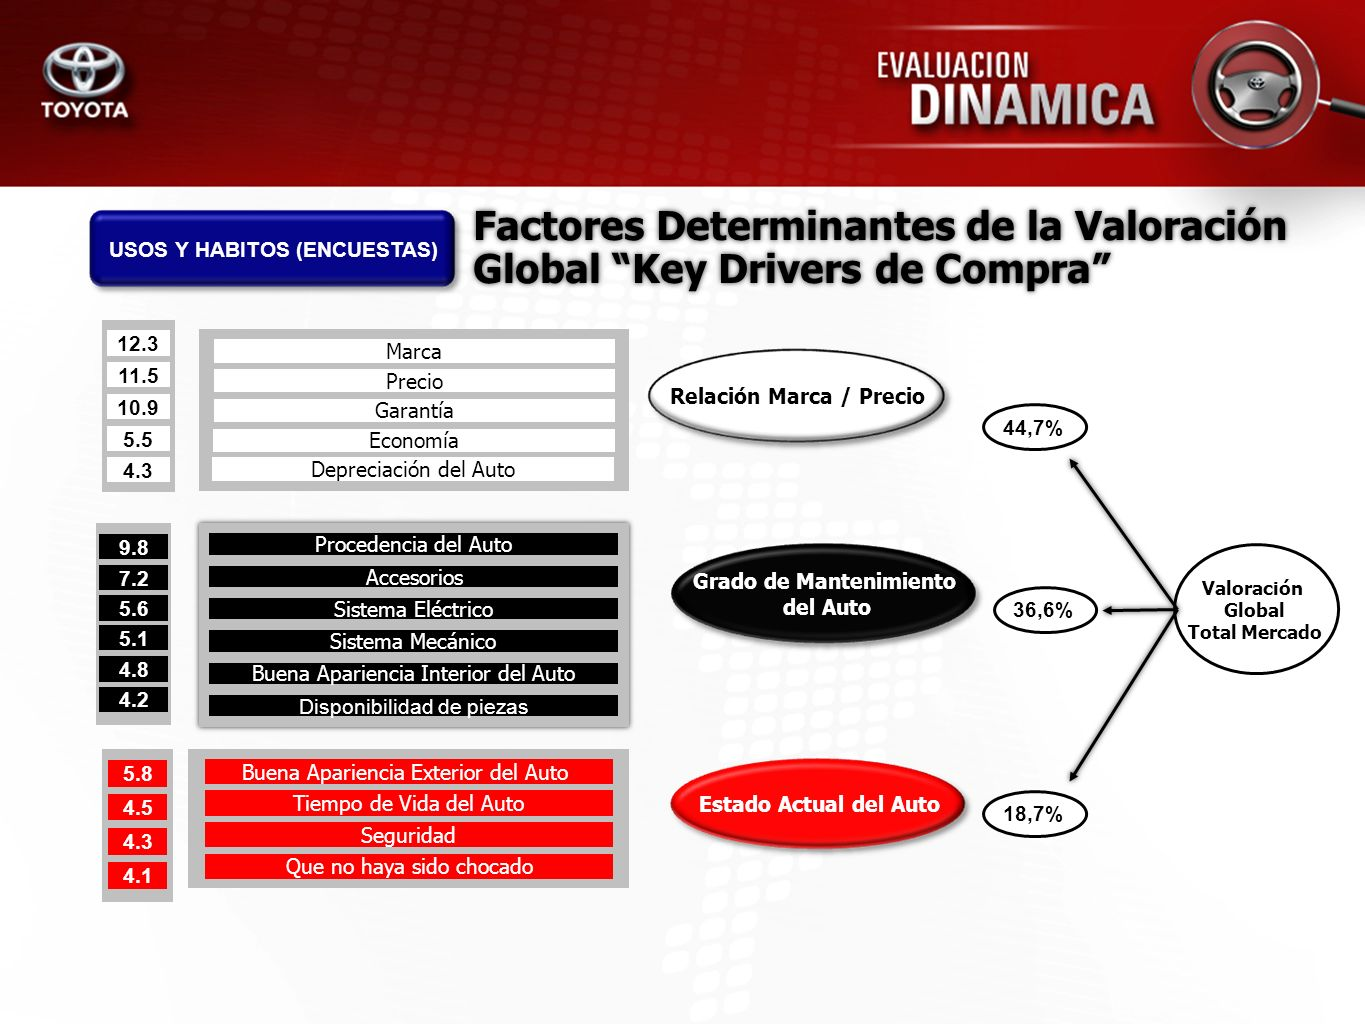 Factores Determinantes de la Valoración Global Key Drivers de Compra